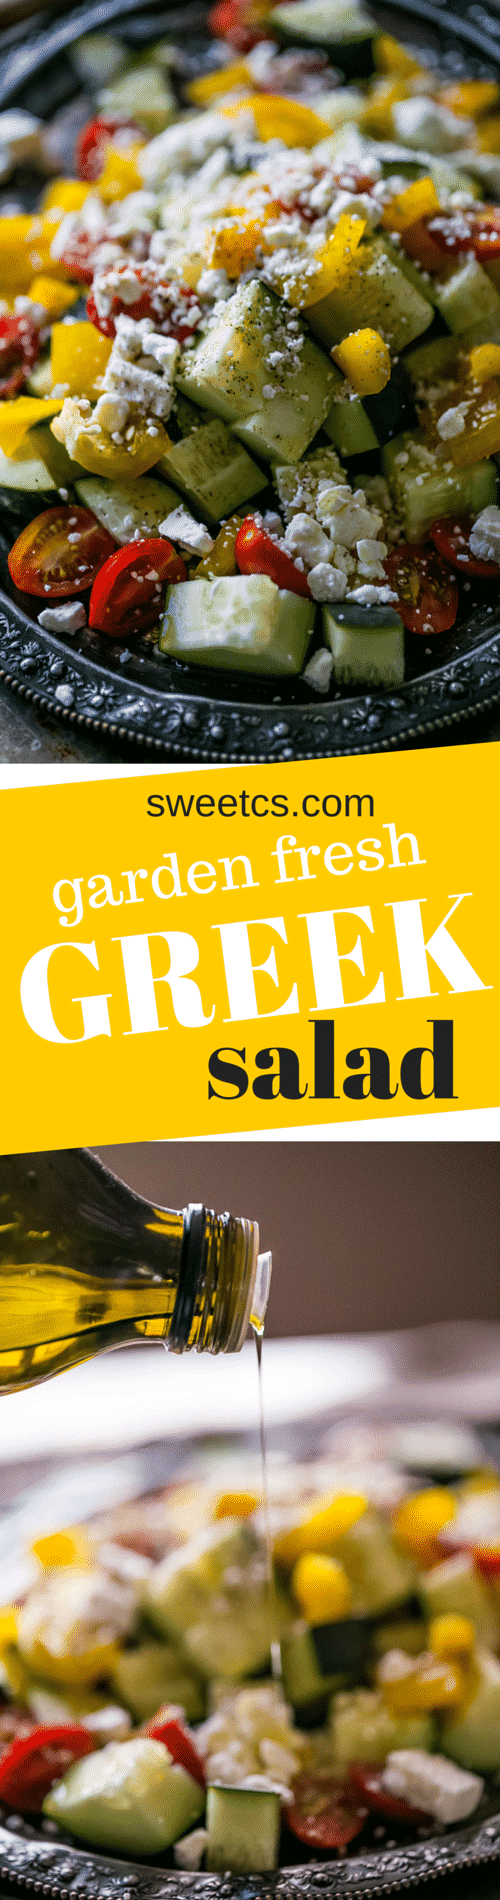 garden fresh greek salad - my summertime favorite!